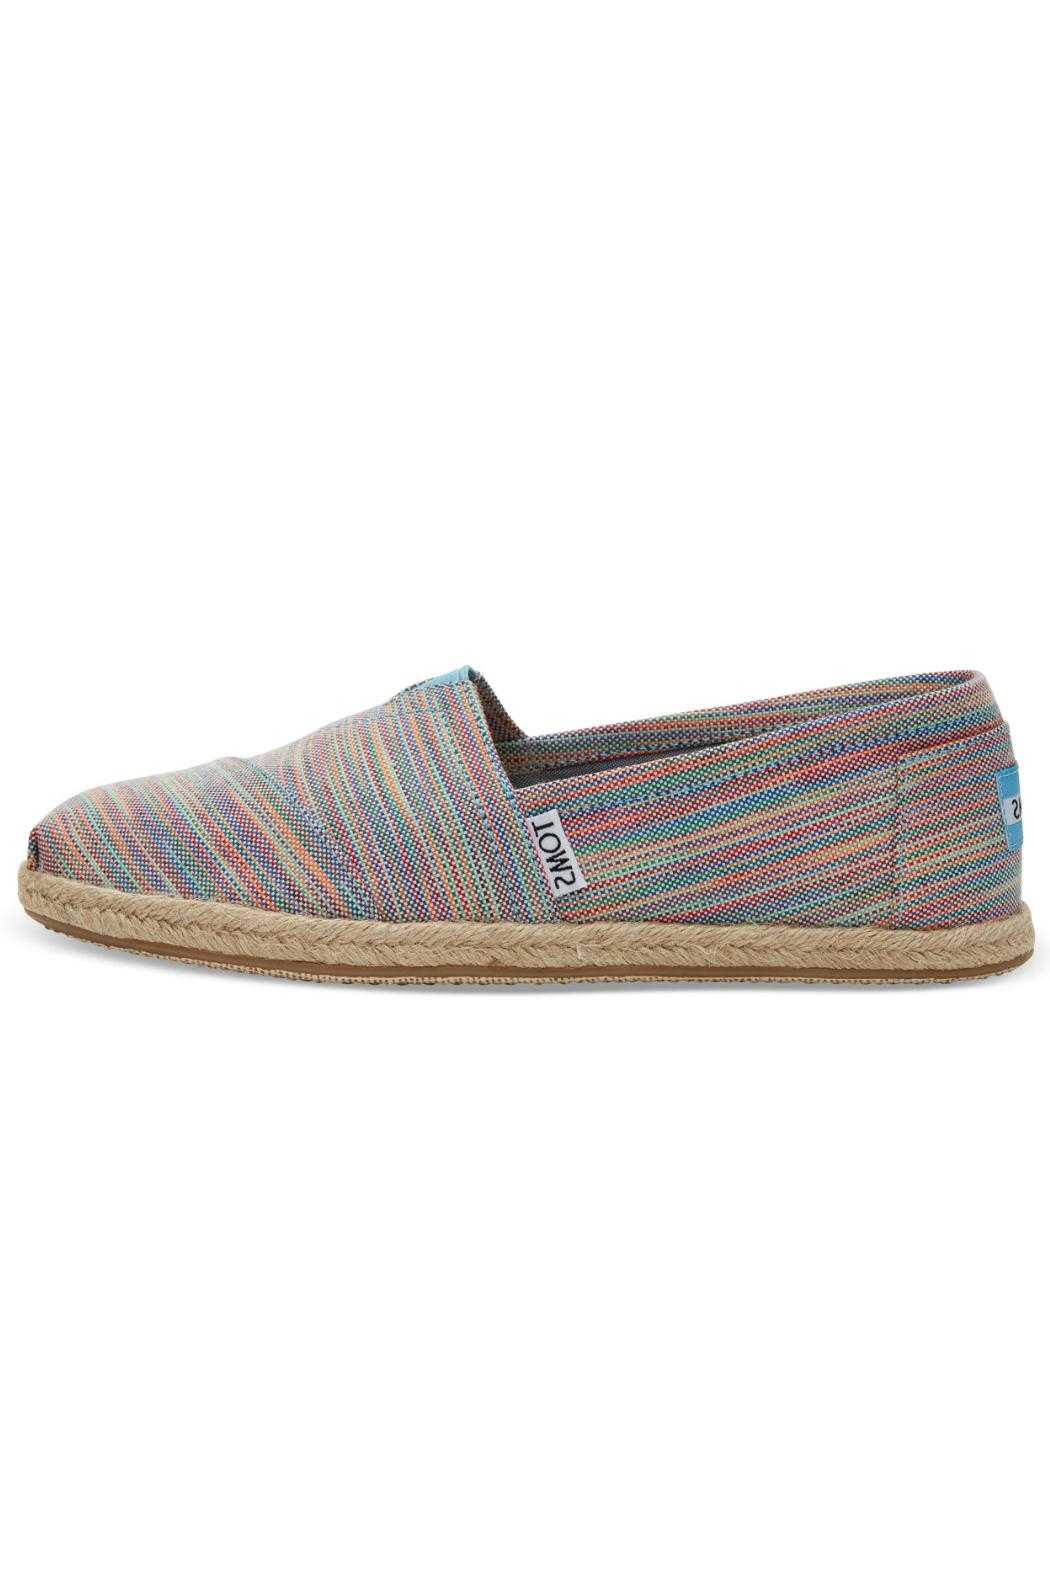 TOMS Rainbow Espadrille Shoes - Front Cropped Image